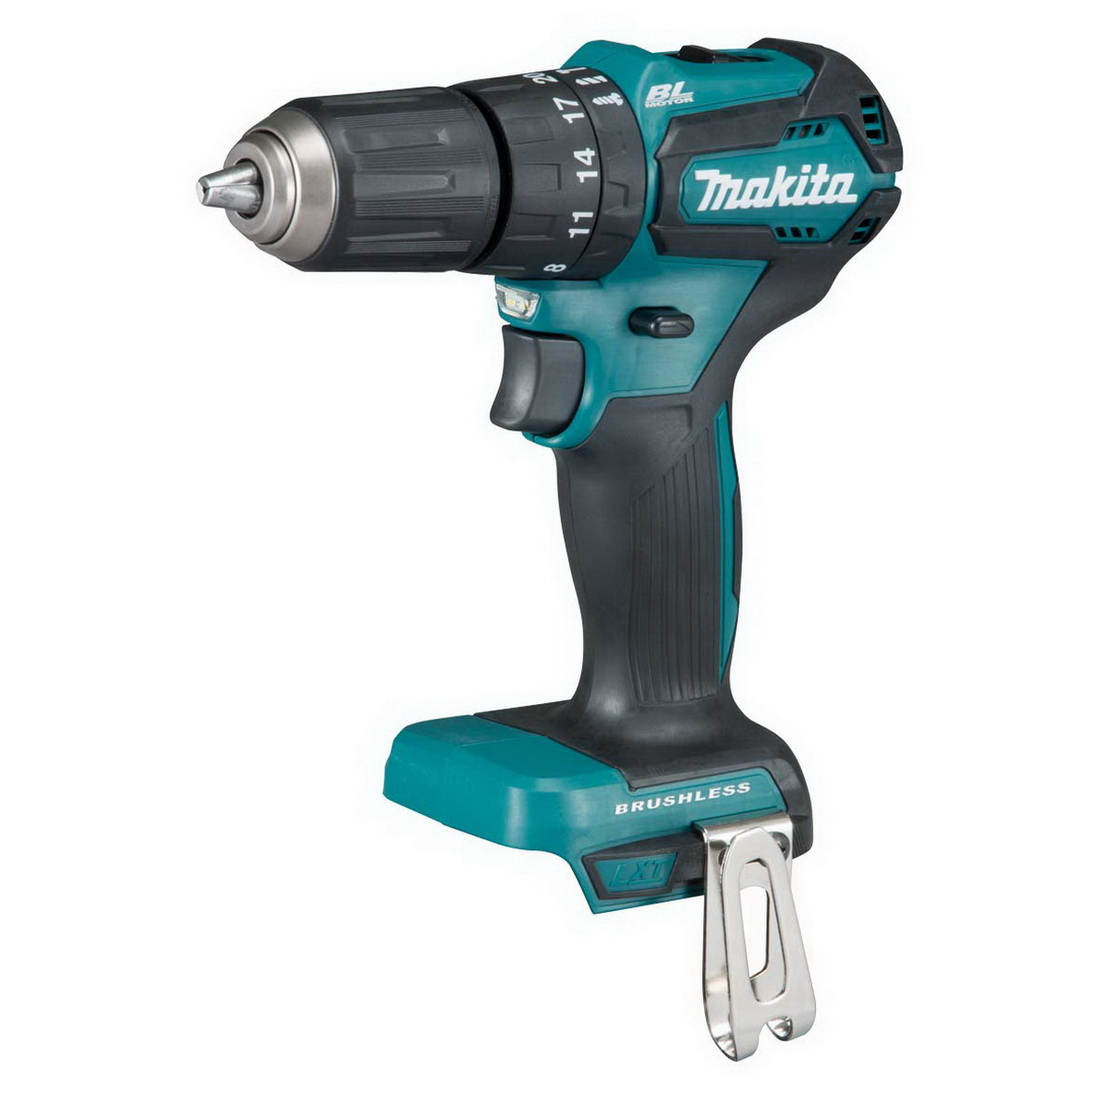 Brushless Sub-Compact Hammer Drill Driver Skin 18V